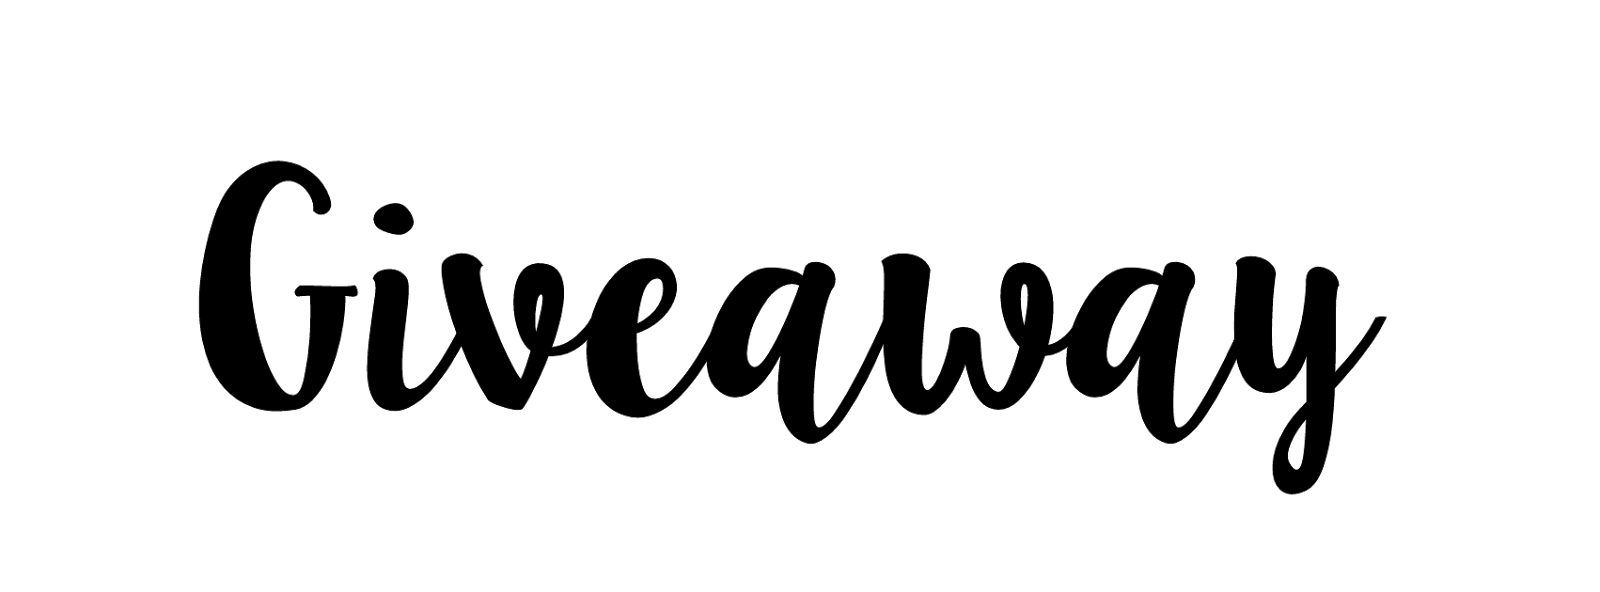 Giveaway Transparent & PNG Clipart Free Download - YAWD